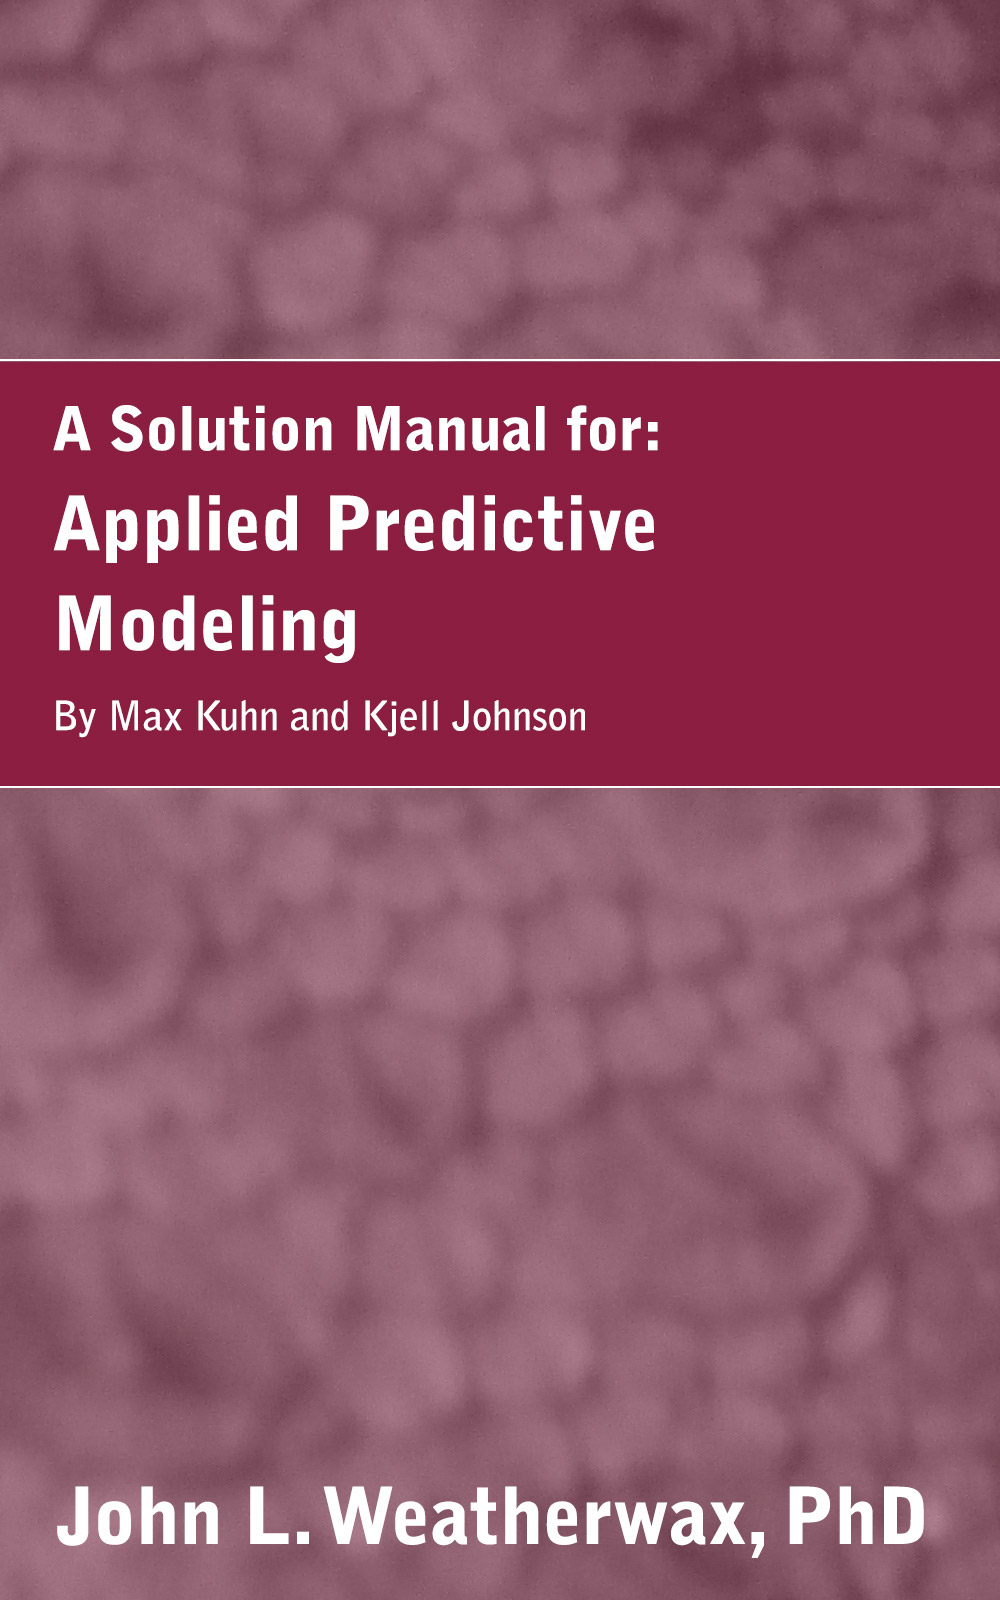 A Solution Manual for: Applied Predictive Modeling